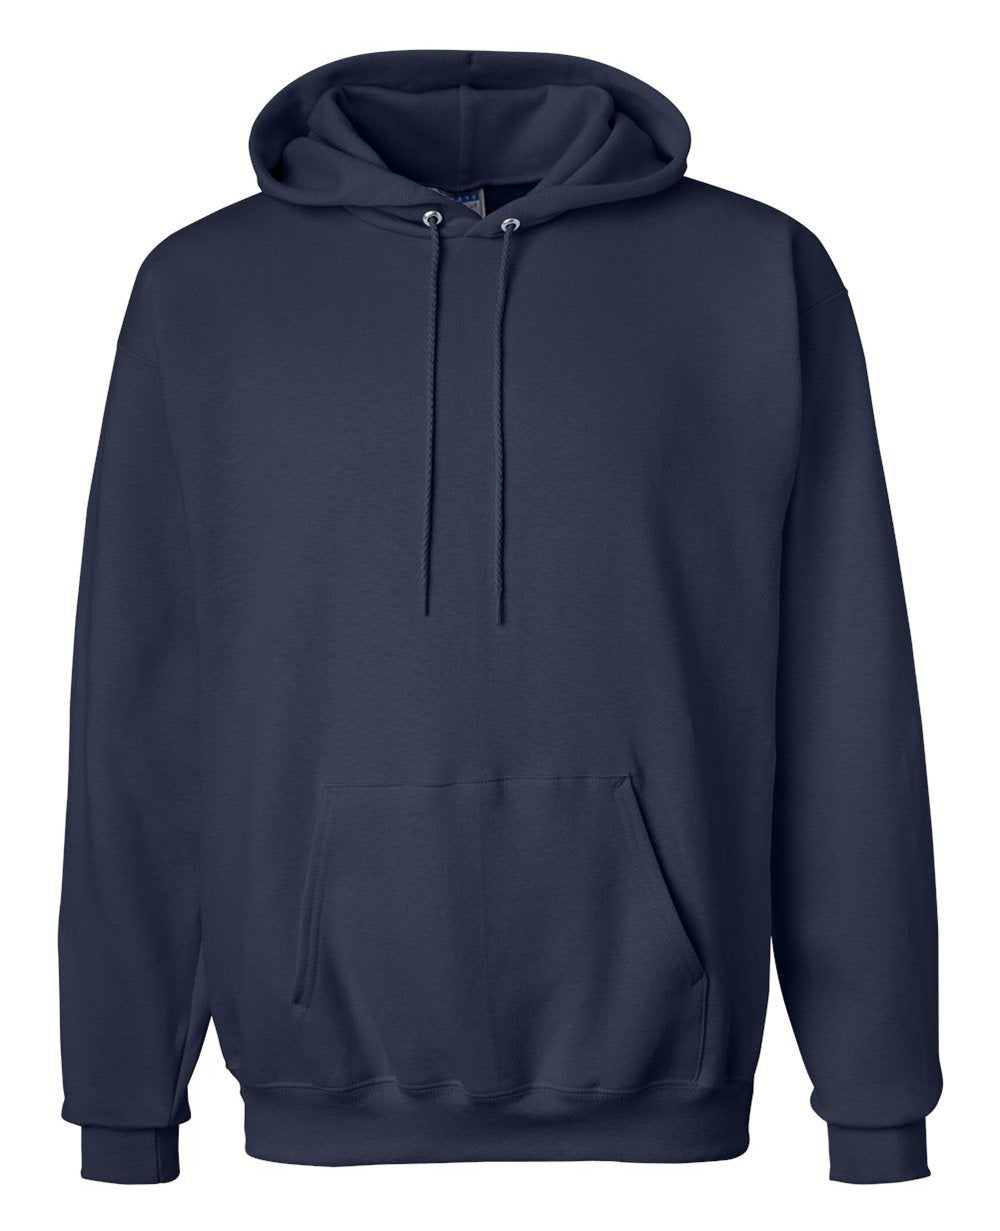 Pullover Hoodies in Navy